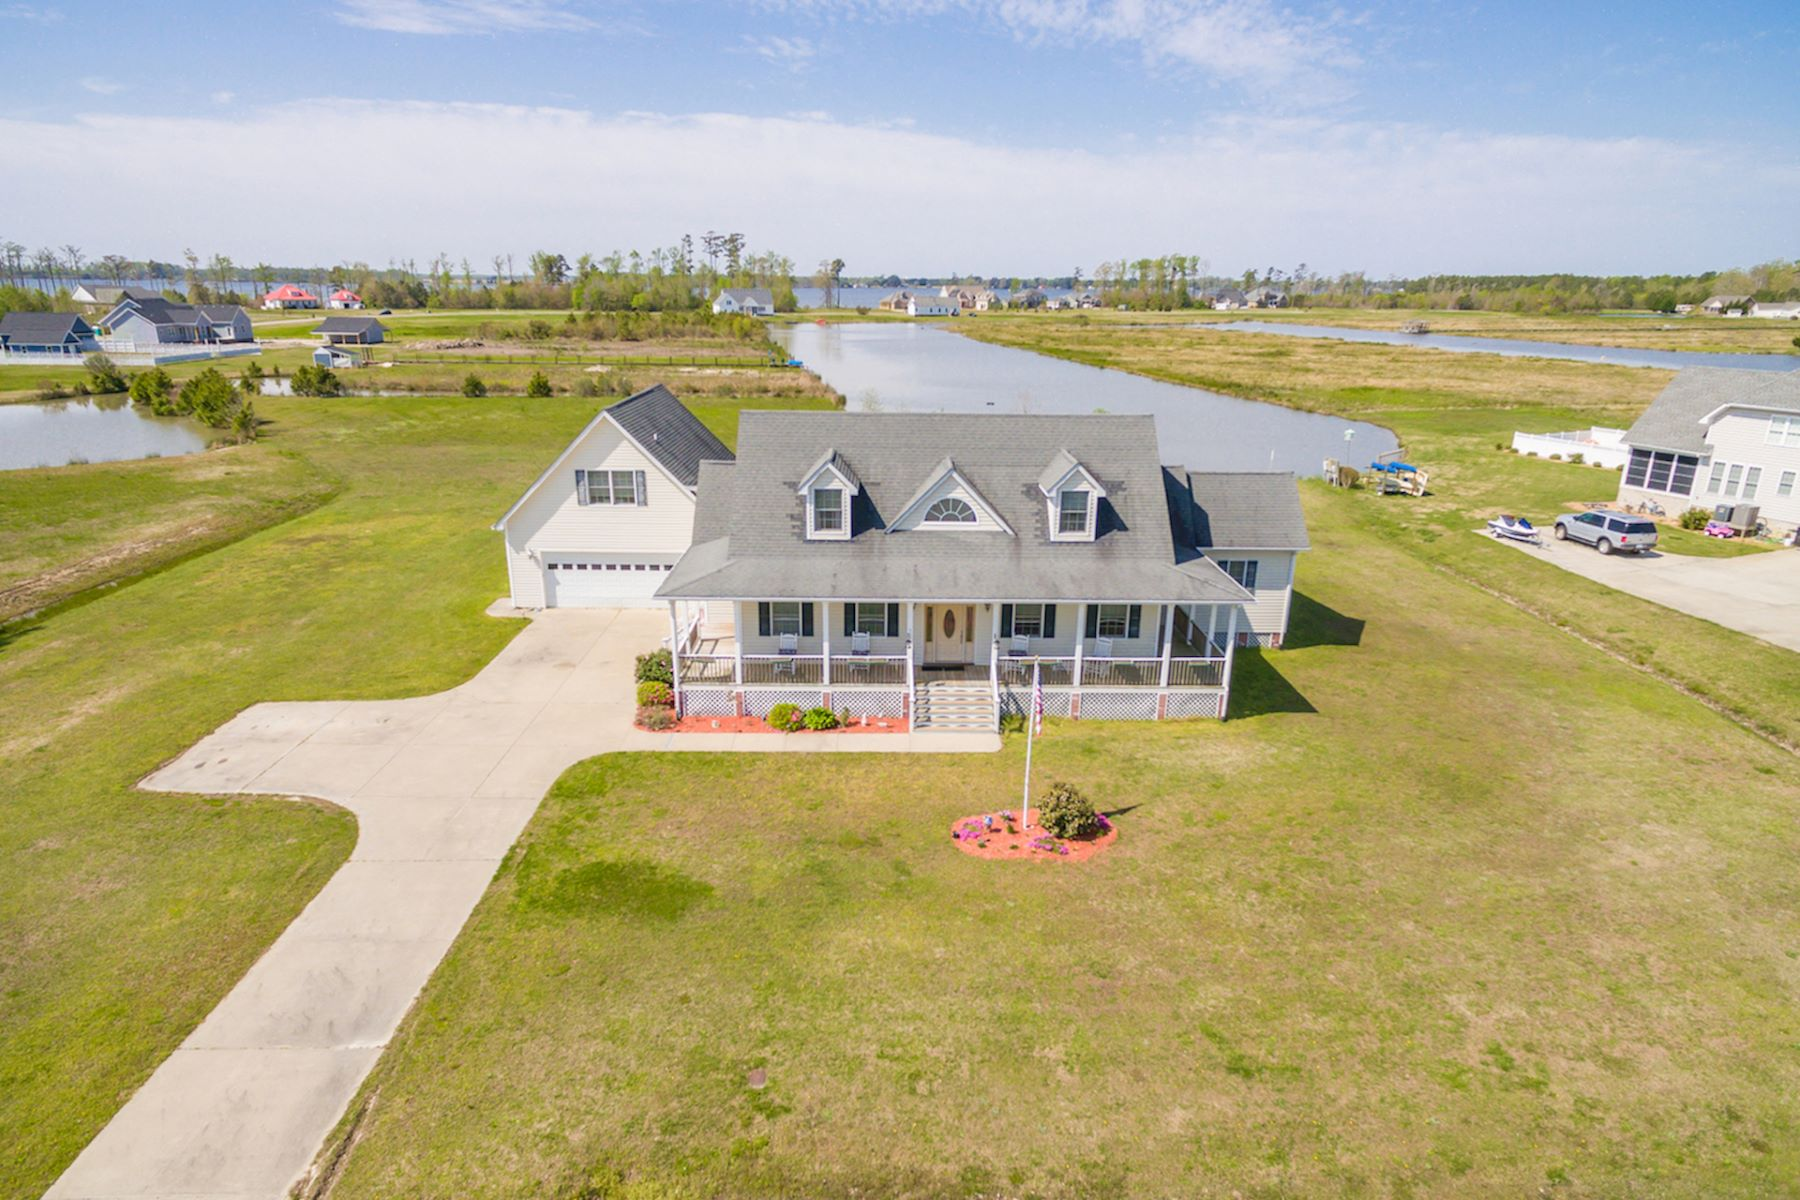 Single Family Homes for Active at The Waters At Sunset Pointe 454 Pointe Vista Dr Elizabeth City, North Carolina 27909 United States